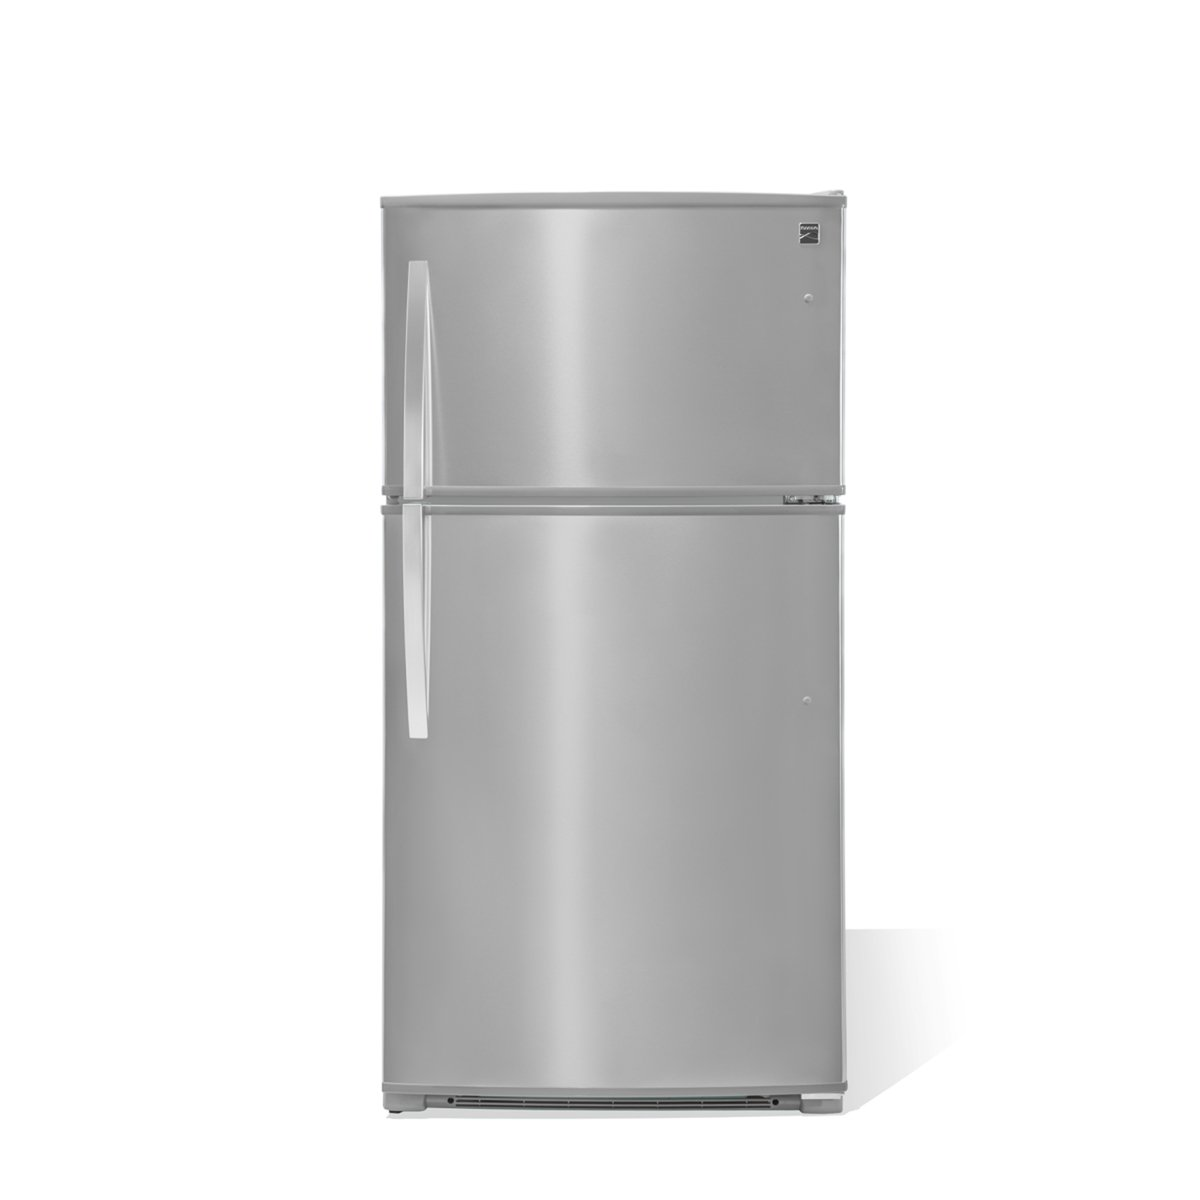 Kenmore 61215 20.8 cu.ft. Top-Freezer Refrigerator with LED Lighting in Stainless Steel with Active Finish, includes delivery and hookup (Available in select cities only)